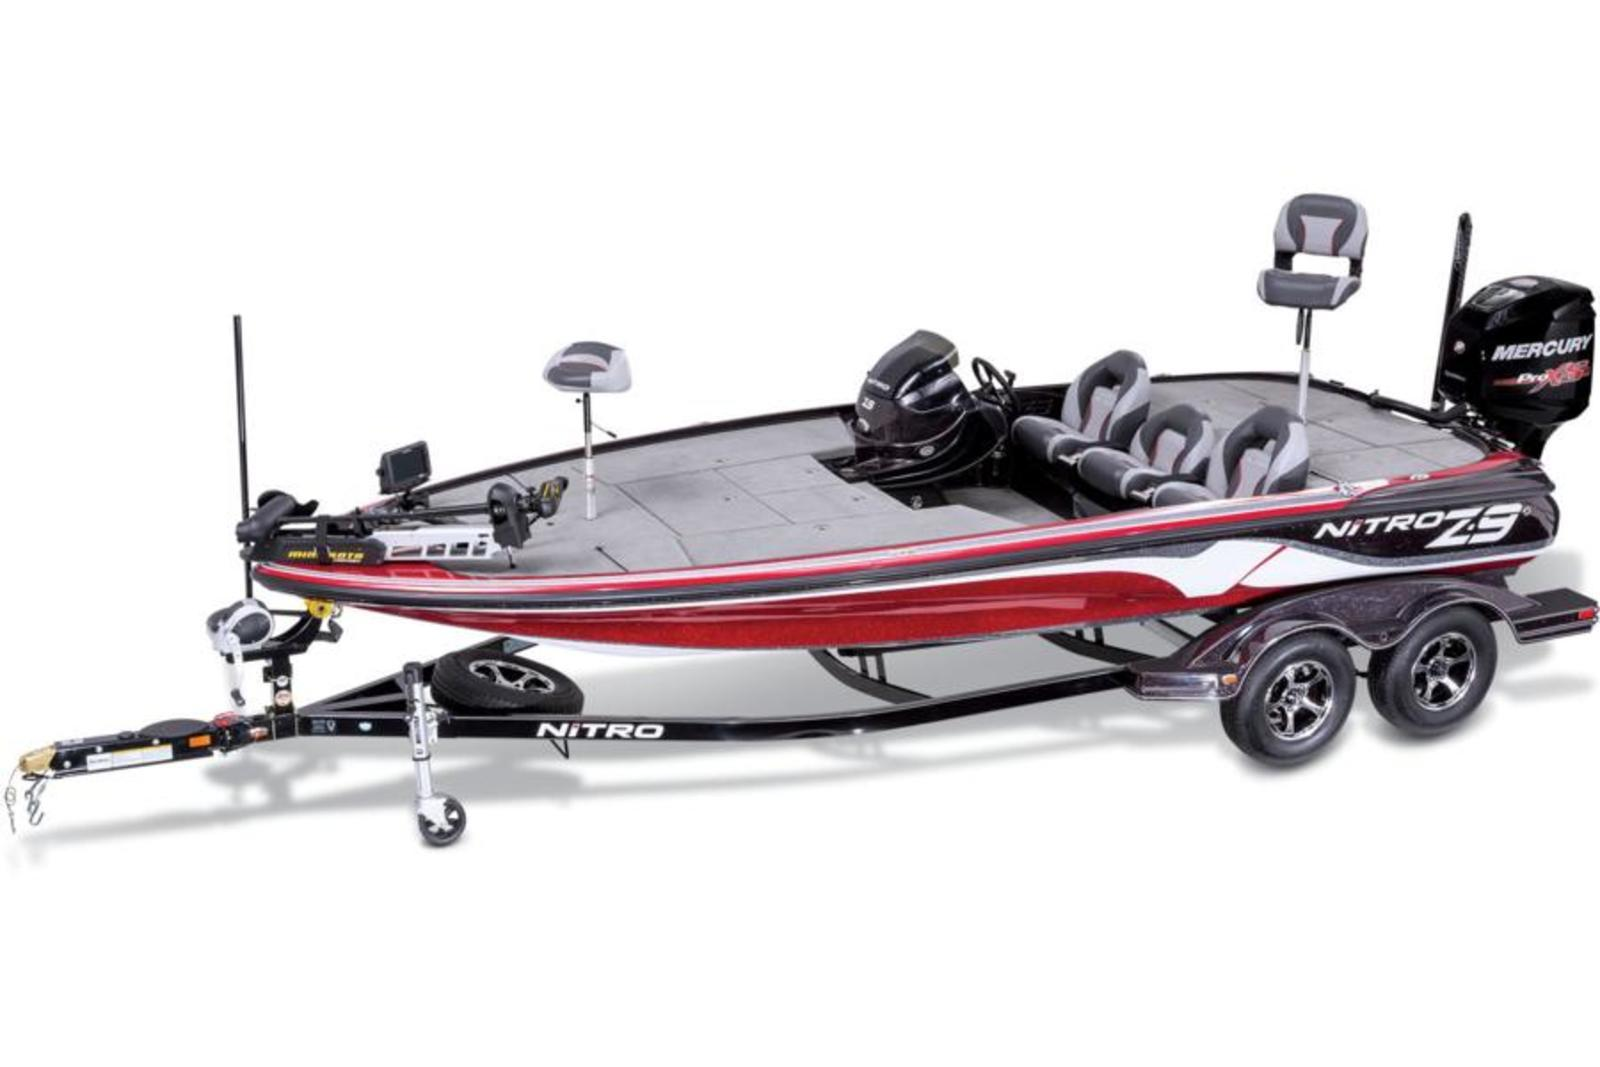 2015 Nitro Z 9 Z Pro High Performance Package Review Top